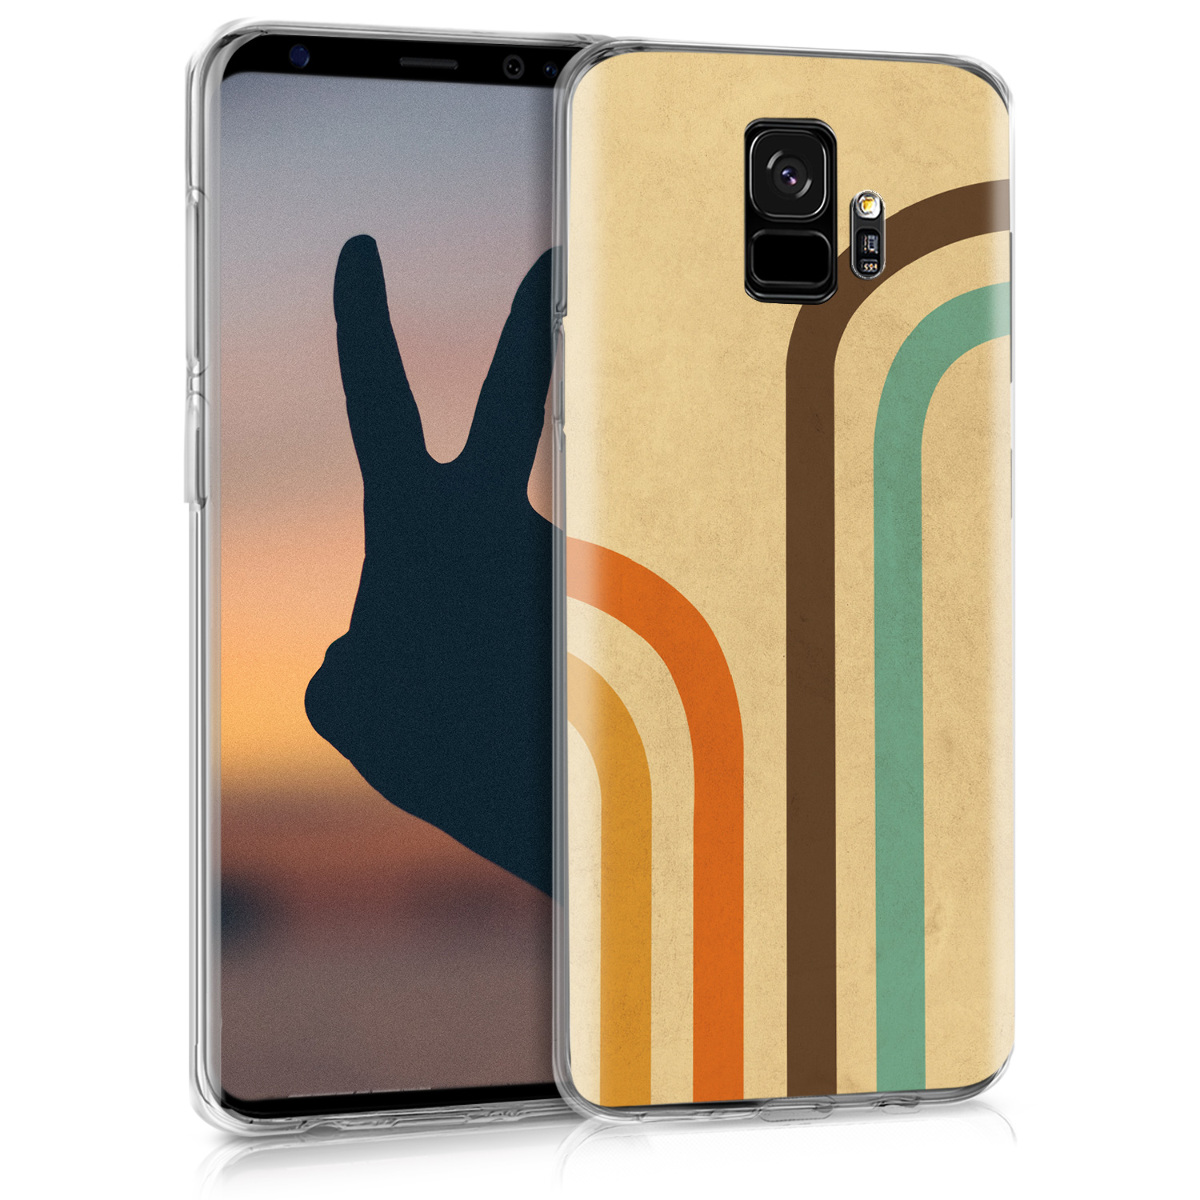 Pouzdro pro Samsung Galaxy S9 - TPU Crystal Clear Back Protective Cover IMD Design - Curved Retro Stripes Orange / Brown / Beige